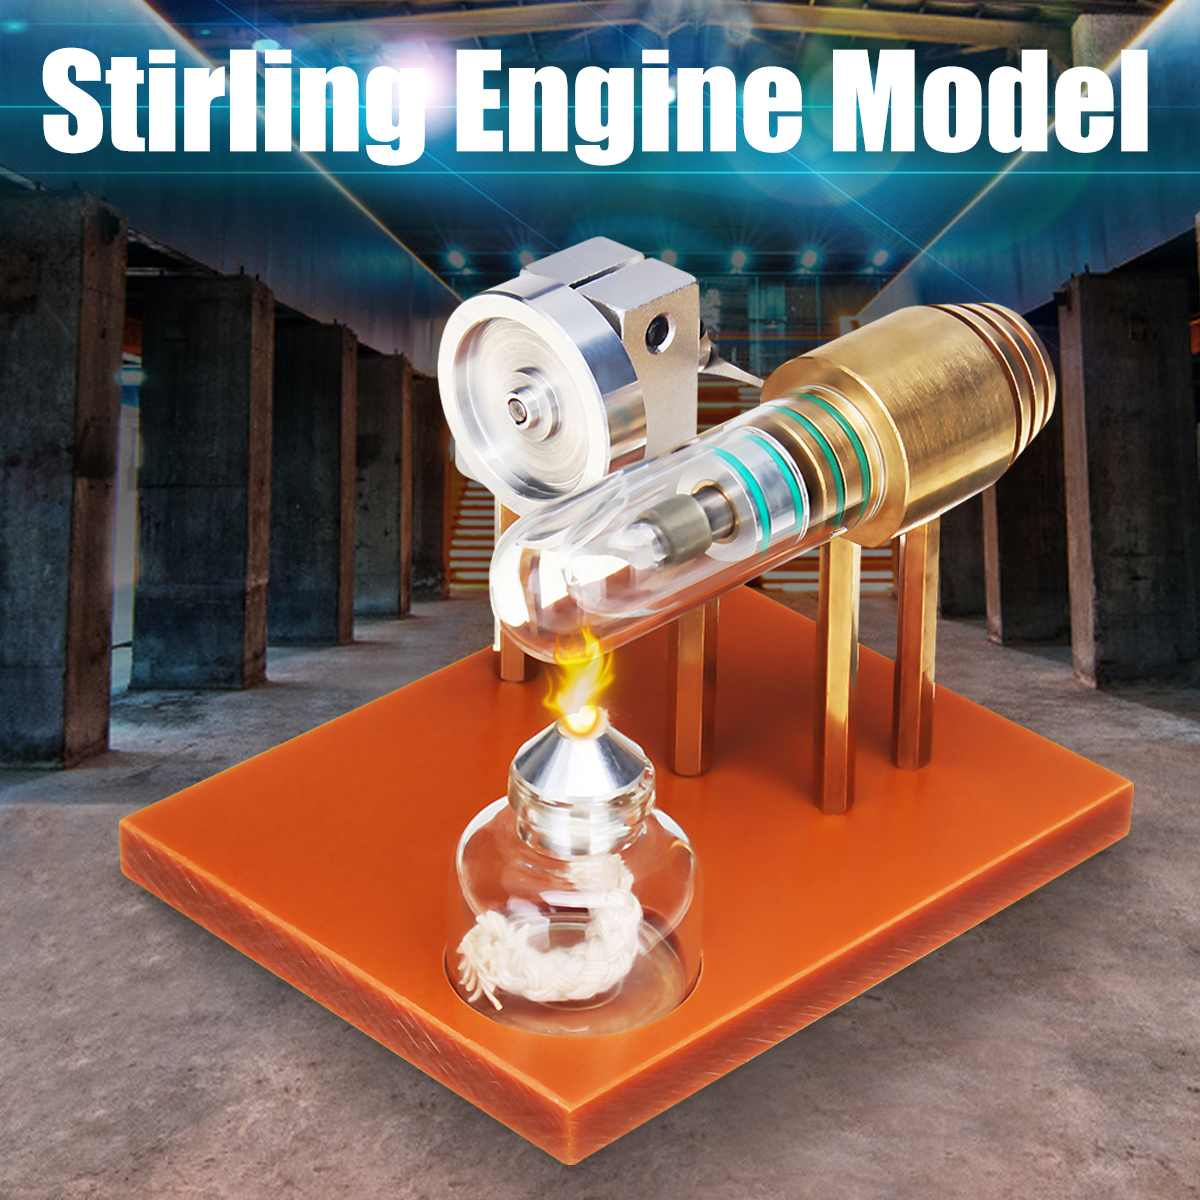 Mini Hot Air Stirling Engine Motor Model Stream Power Physics Experiment Model Educational Science Toy Gift For ChildrenMini Hot Air Stirling Engine Motor Model Stream Power Physics Experiment Model Educational Science Toy Gift For Children